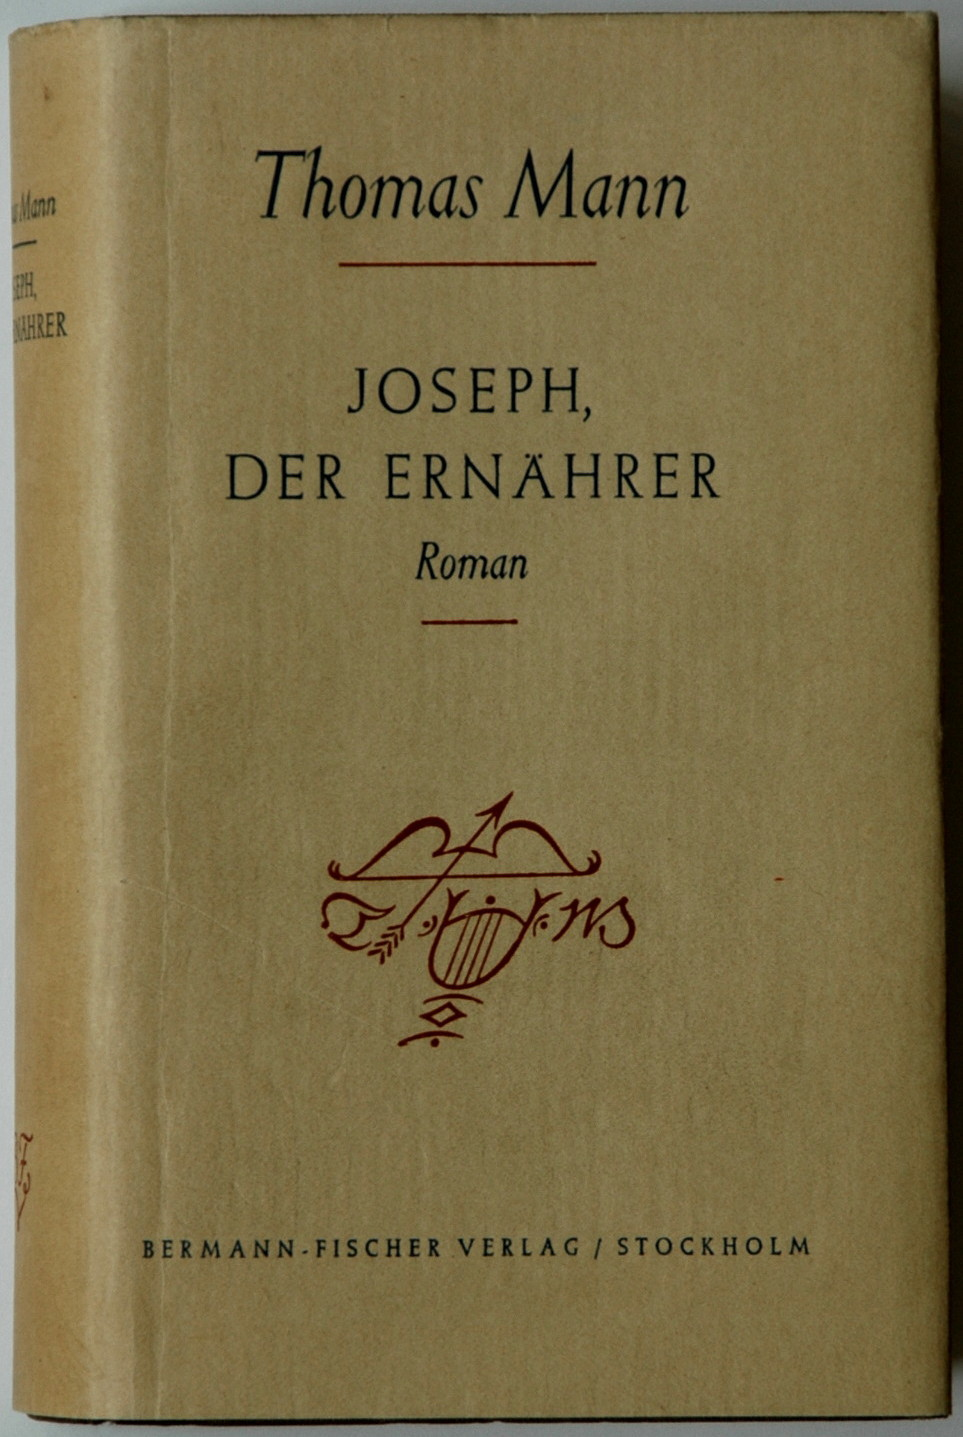 Joseph Und Joseph Joseph And His Brothers Wikipedia